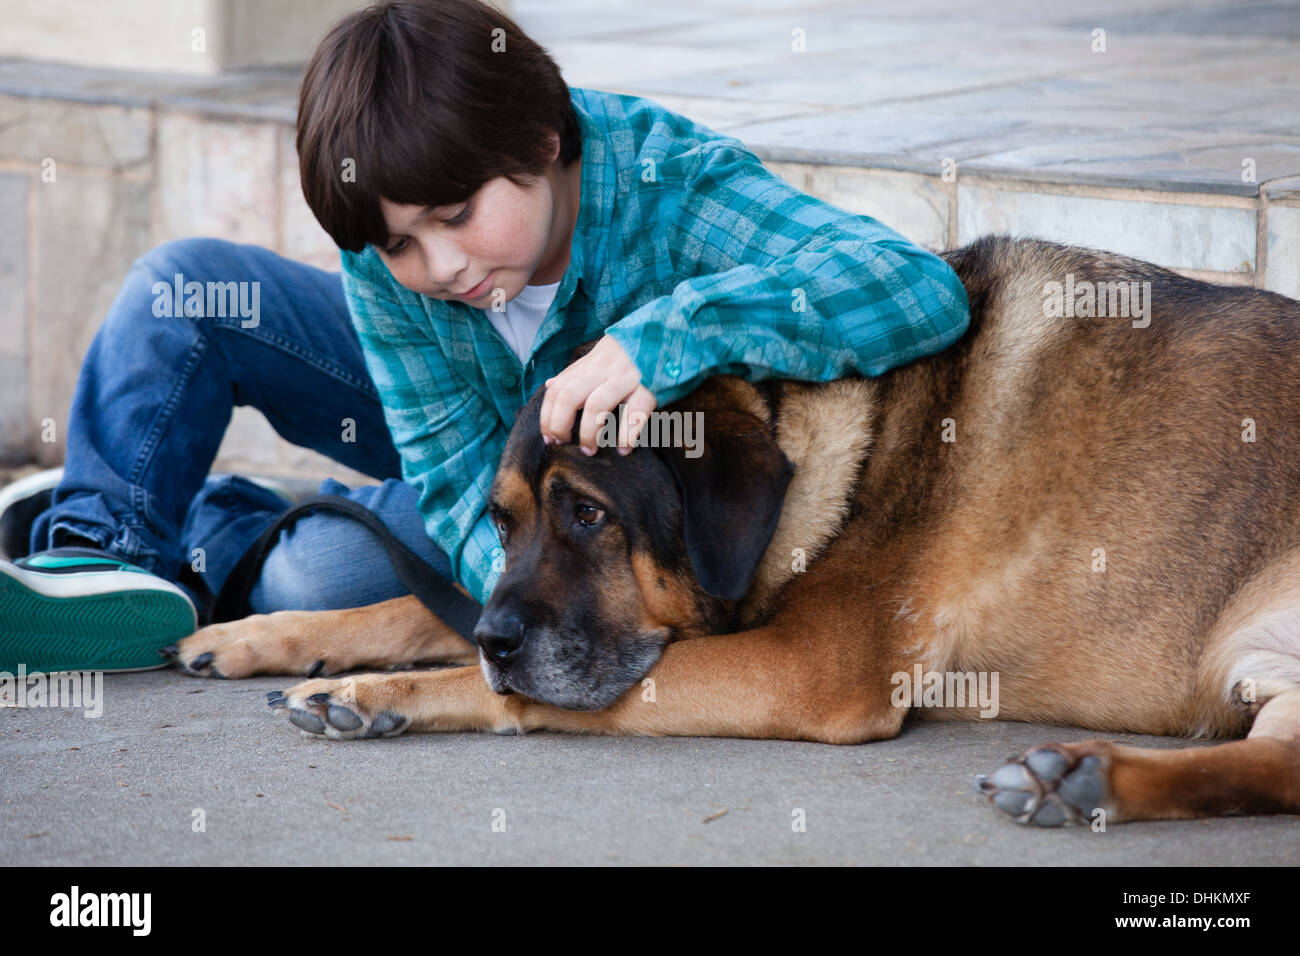 A 10 year old boy and his dog sitting down on the sidewalk - Stock Image